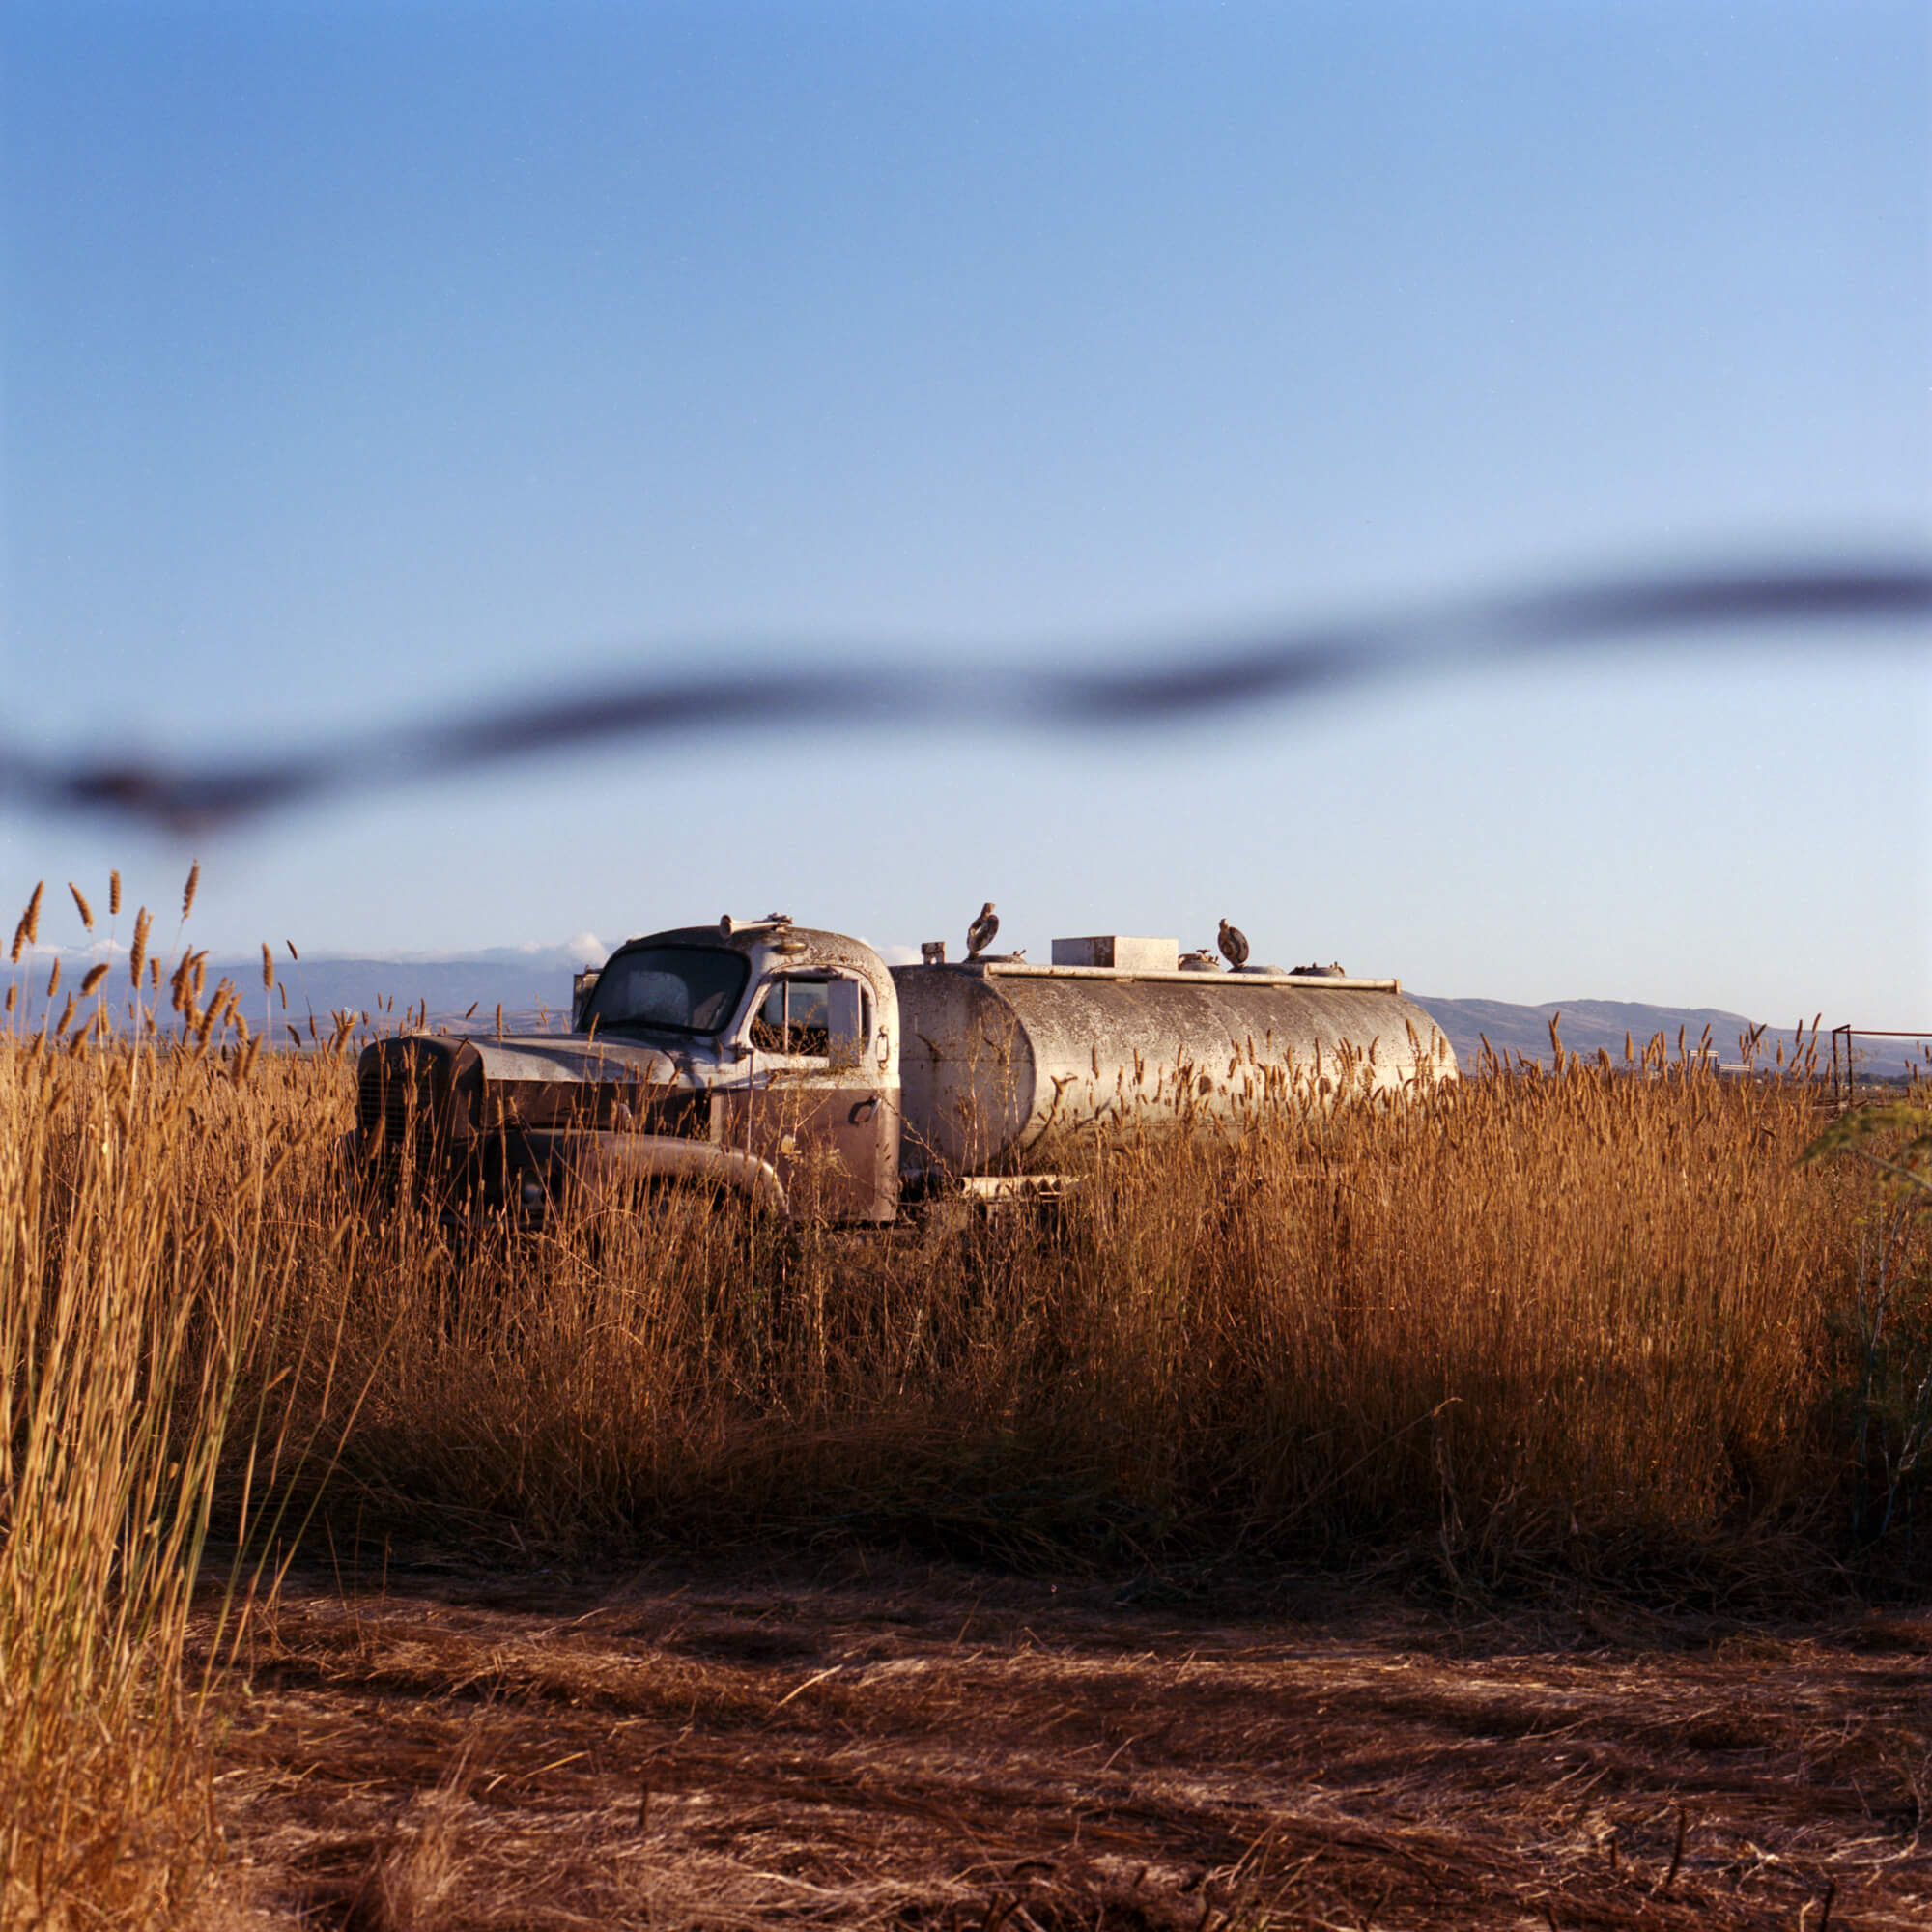 Phoebe Somerfield - Grapefruit Boulevard the south west collective of photography gas truck in field in America